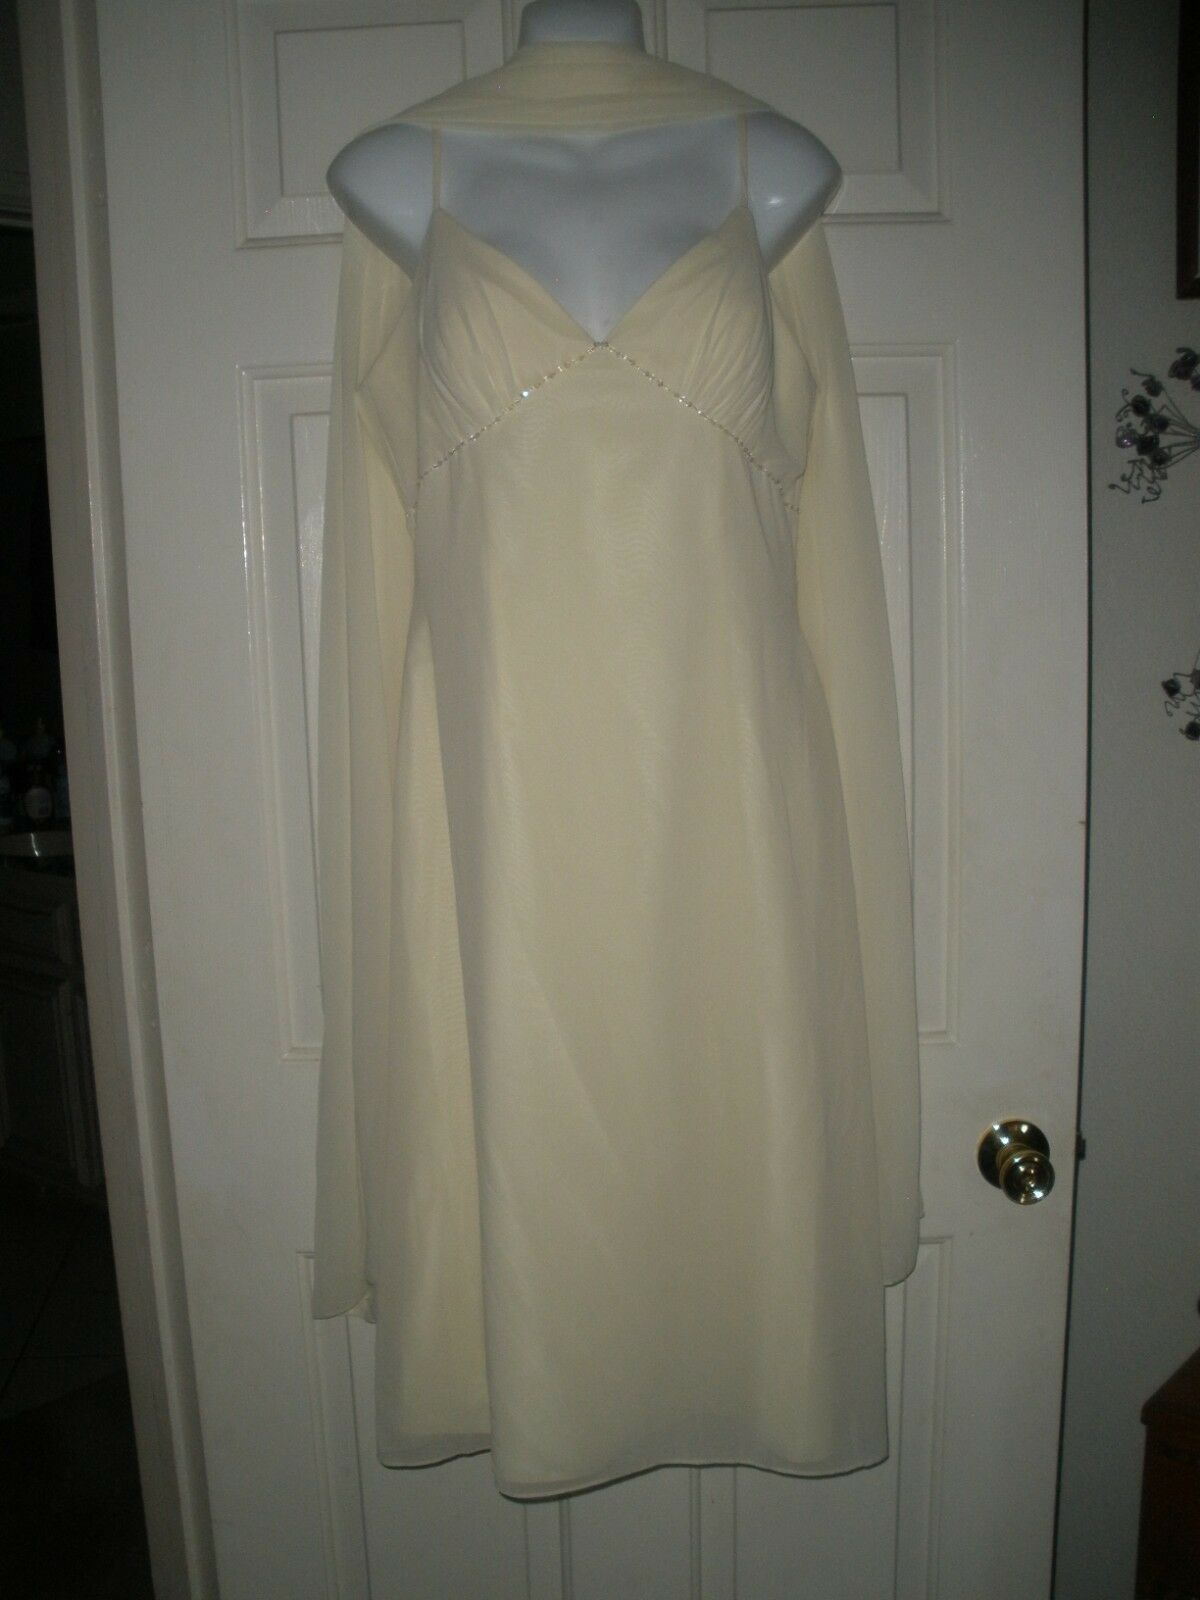 #349 Ginnis Formal Gown Dress 14 Lemon Cream Flowing Pageant New NWT Cocktail